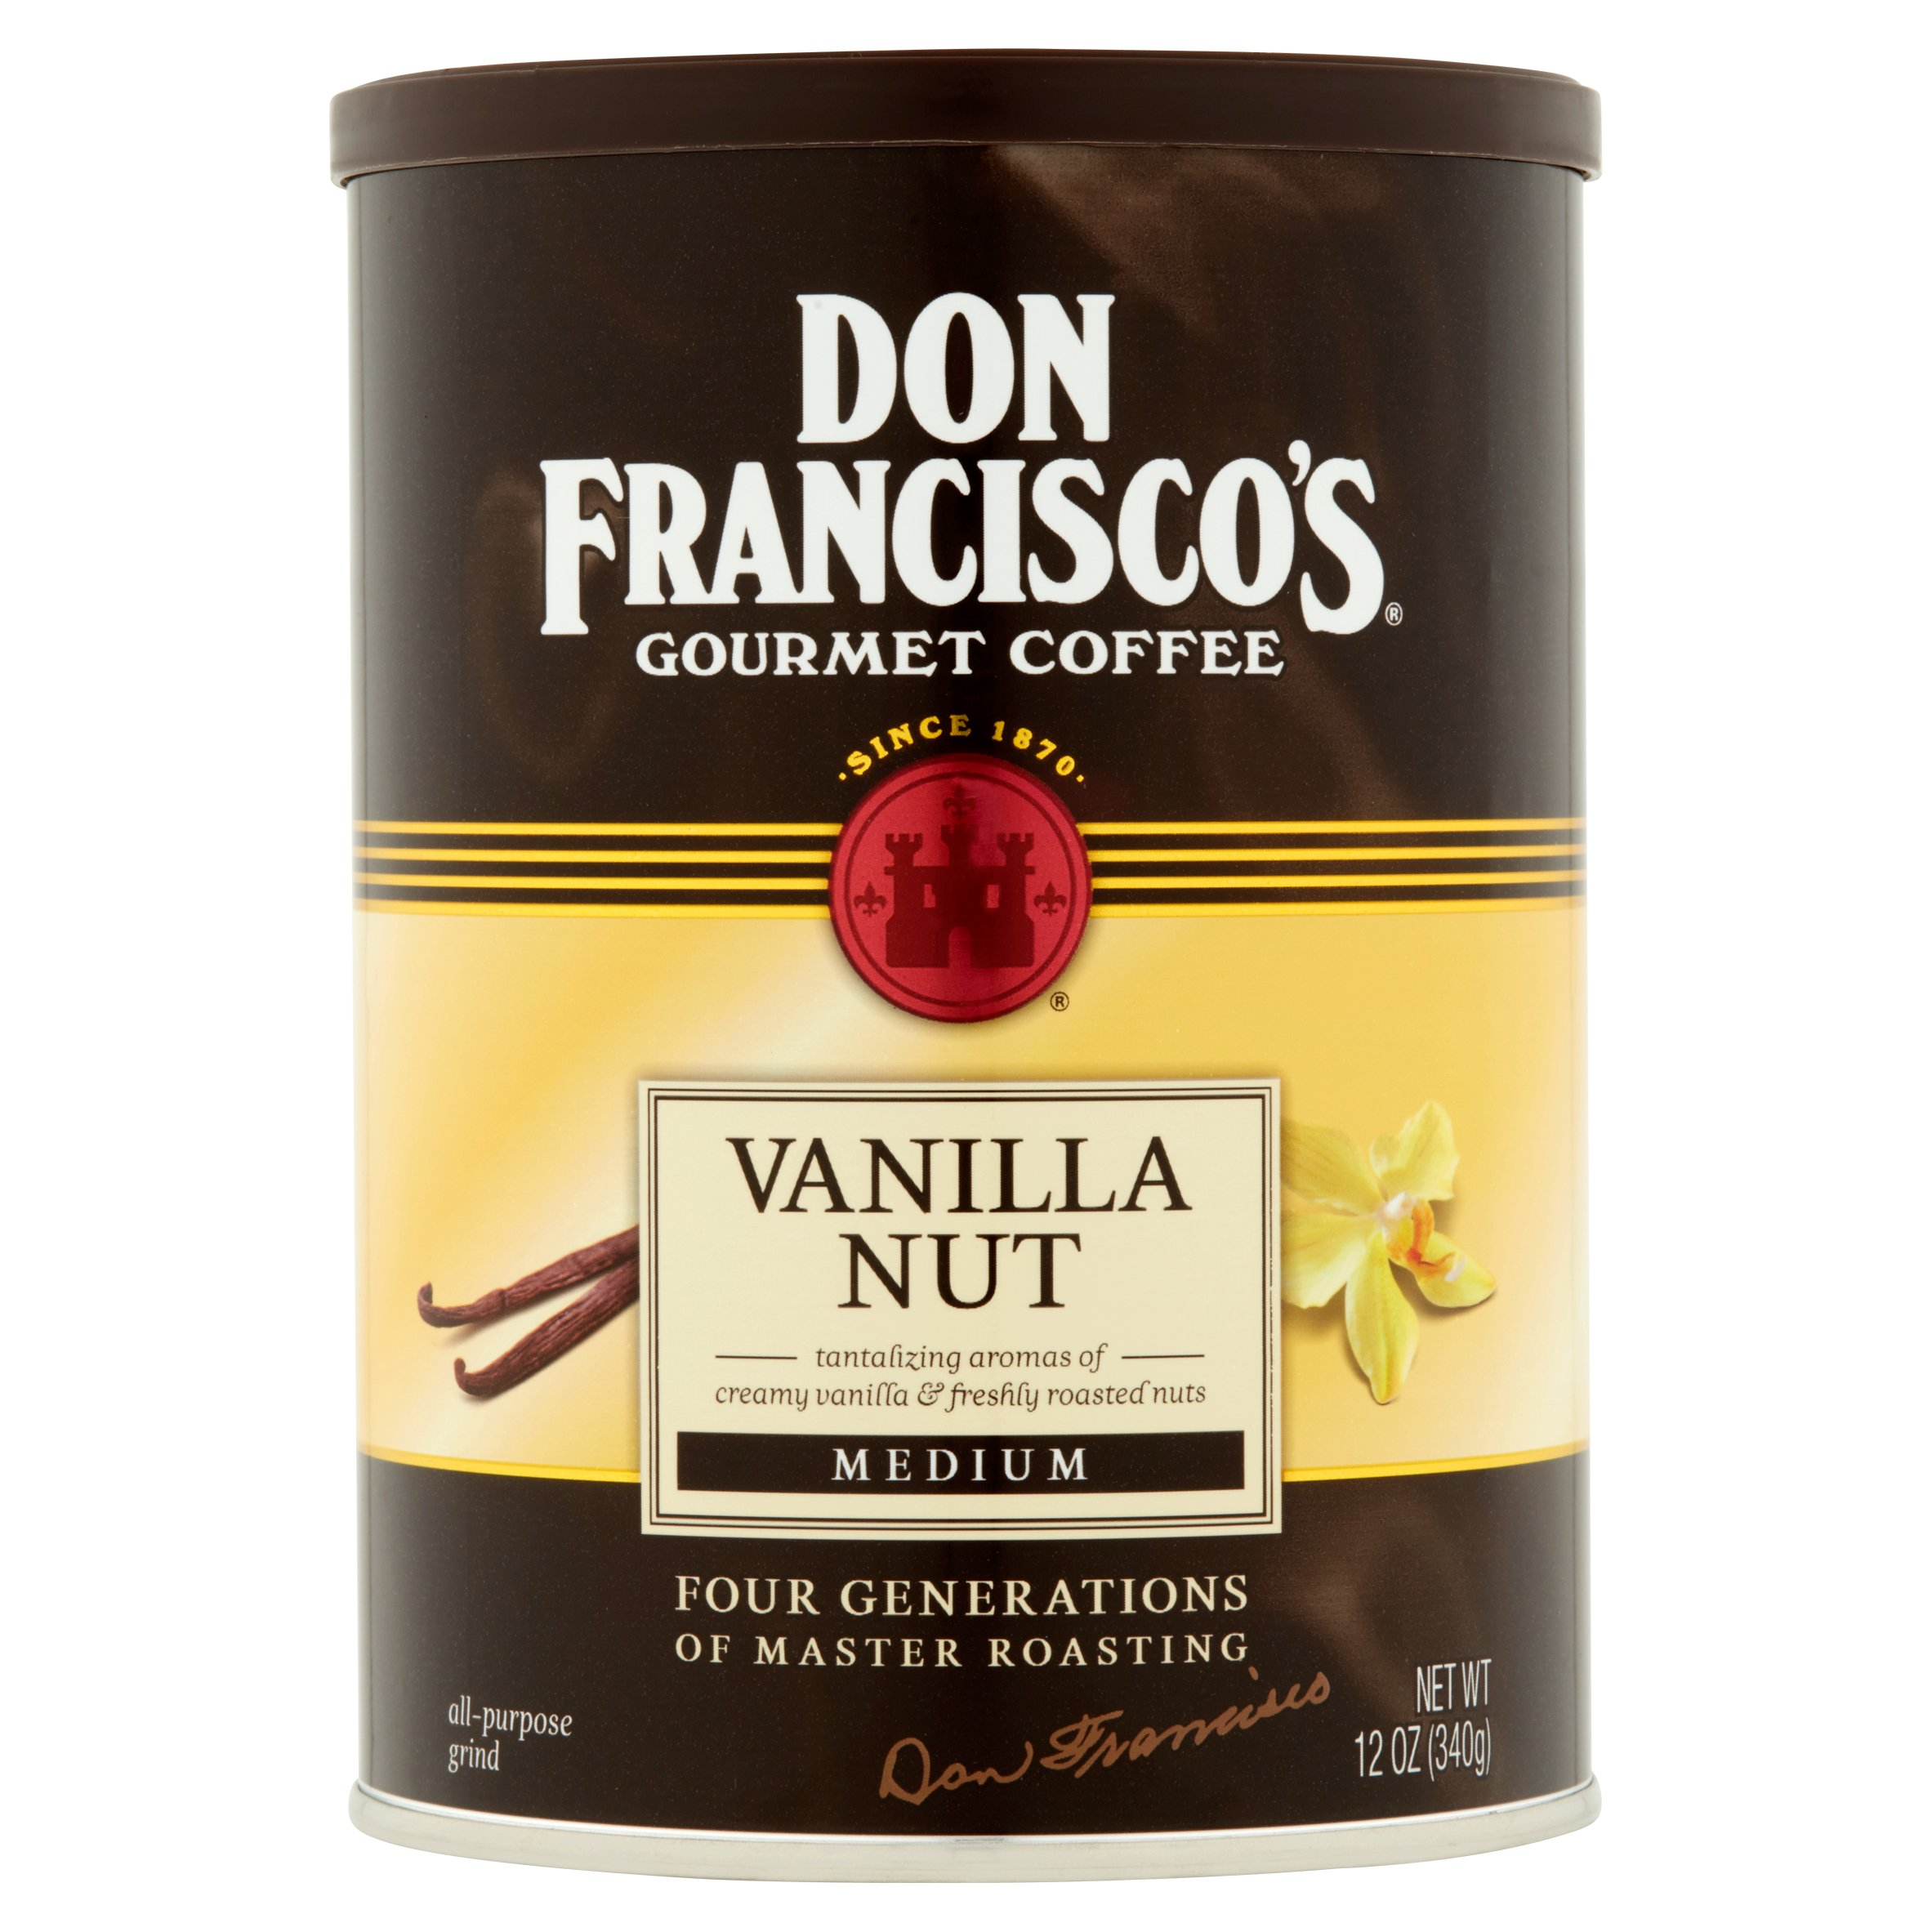 Don Francisco's Vanilla Nut Specialty Flavored Ground Coffee, 12 Oz